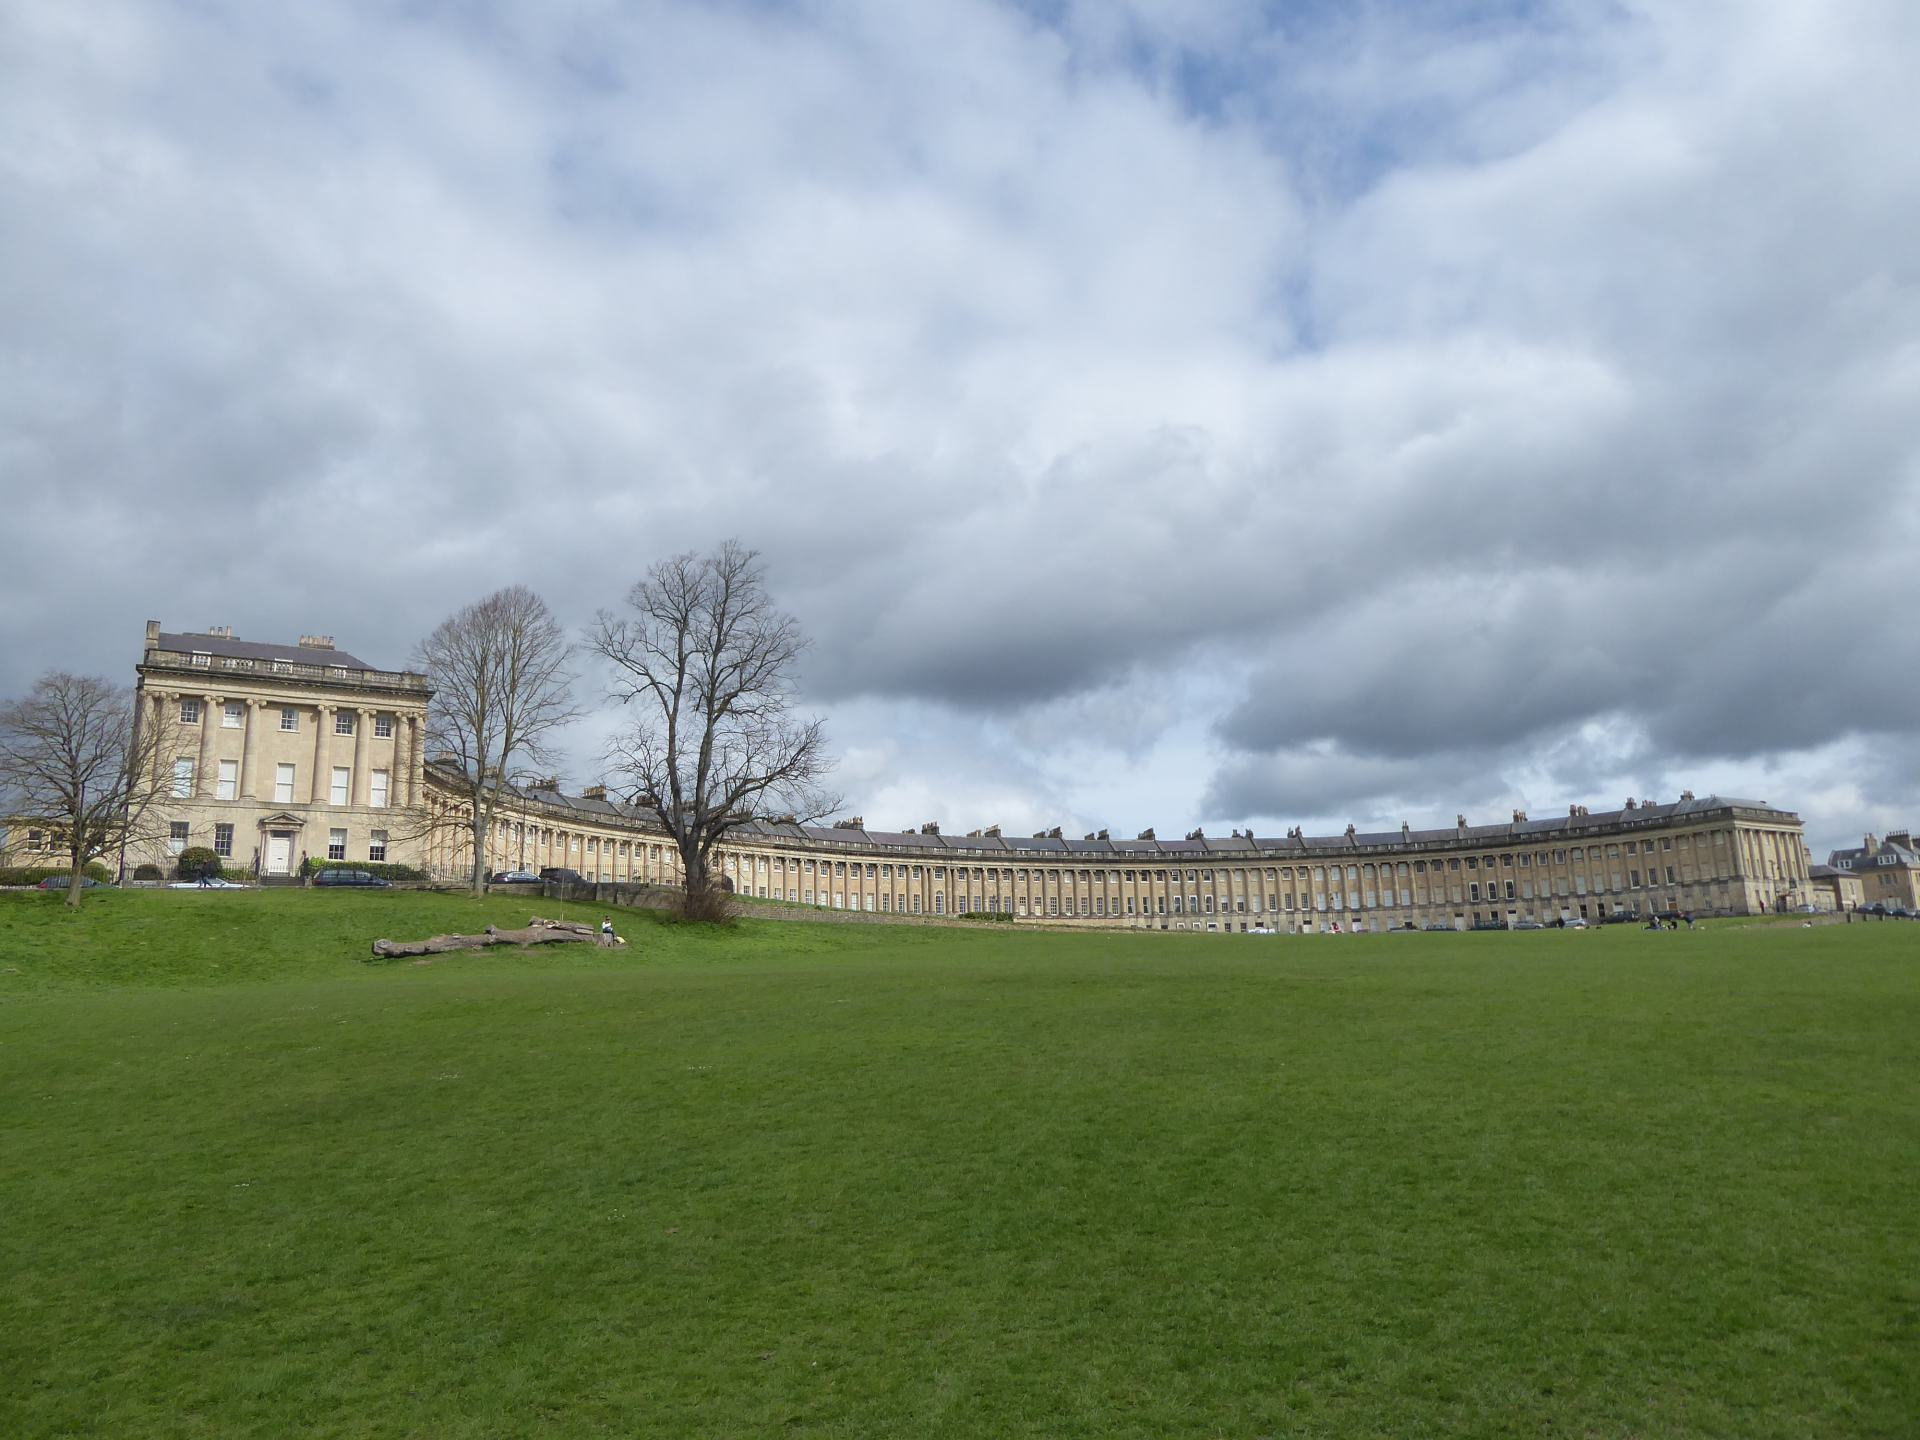 A view of the Royal Crescent in Bath, showing a Georgian building in a semi circle above a green area, with 3 tree's on the left.